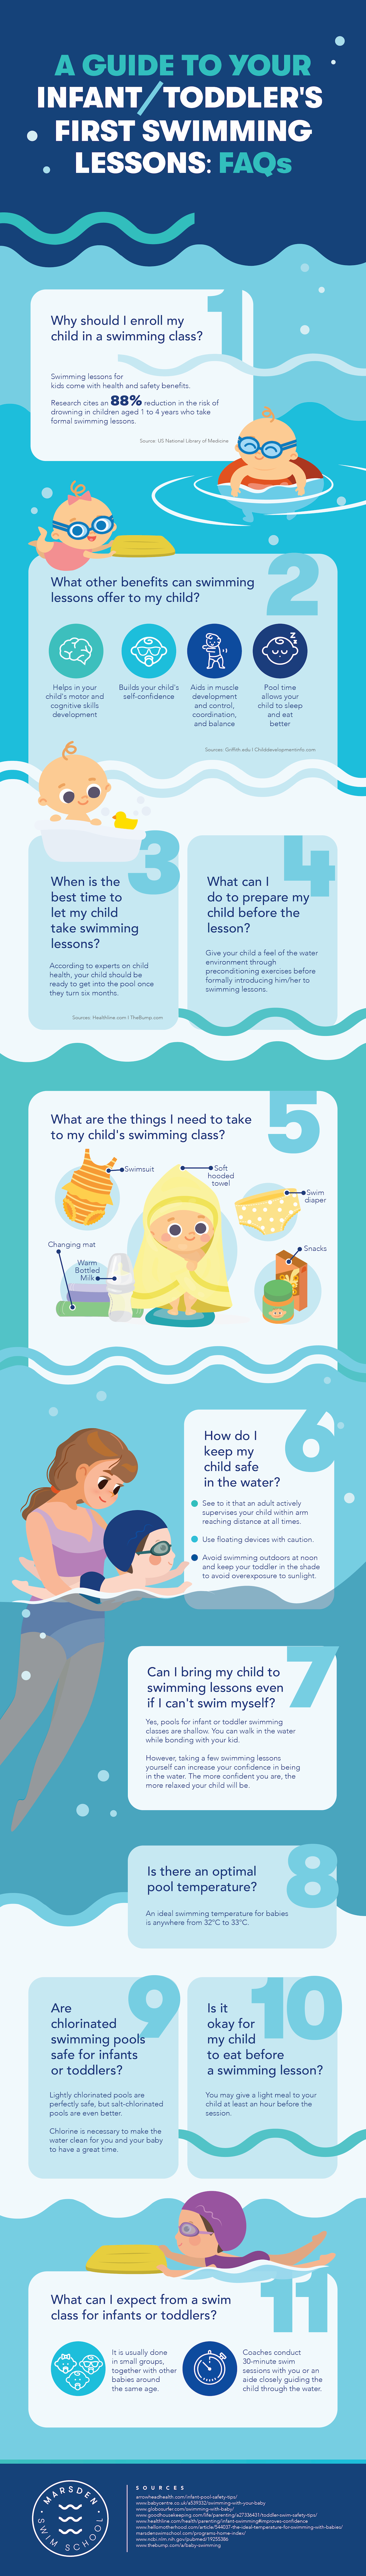 A Guide to Your Infant or Toddler's First Swimming Lessons: FAQs